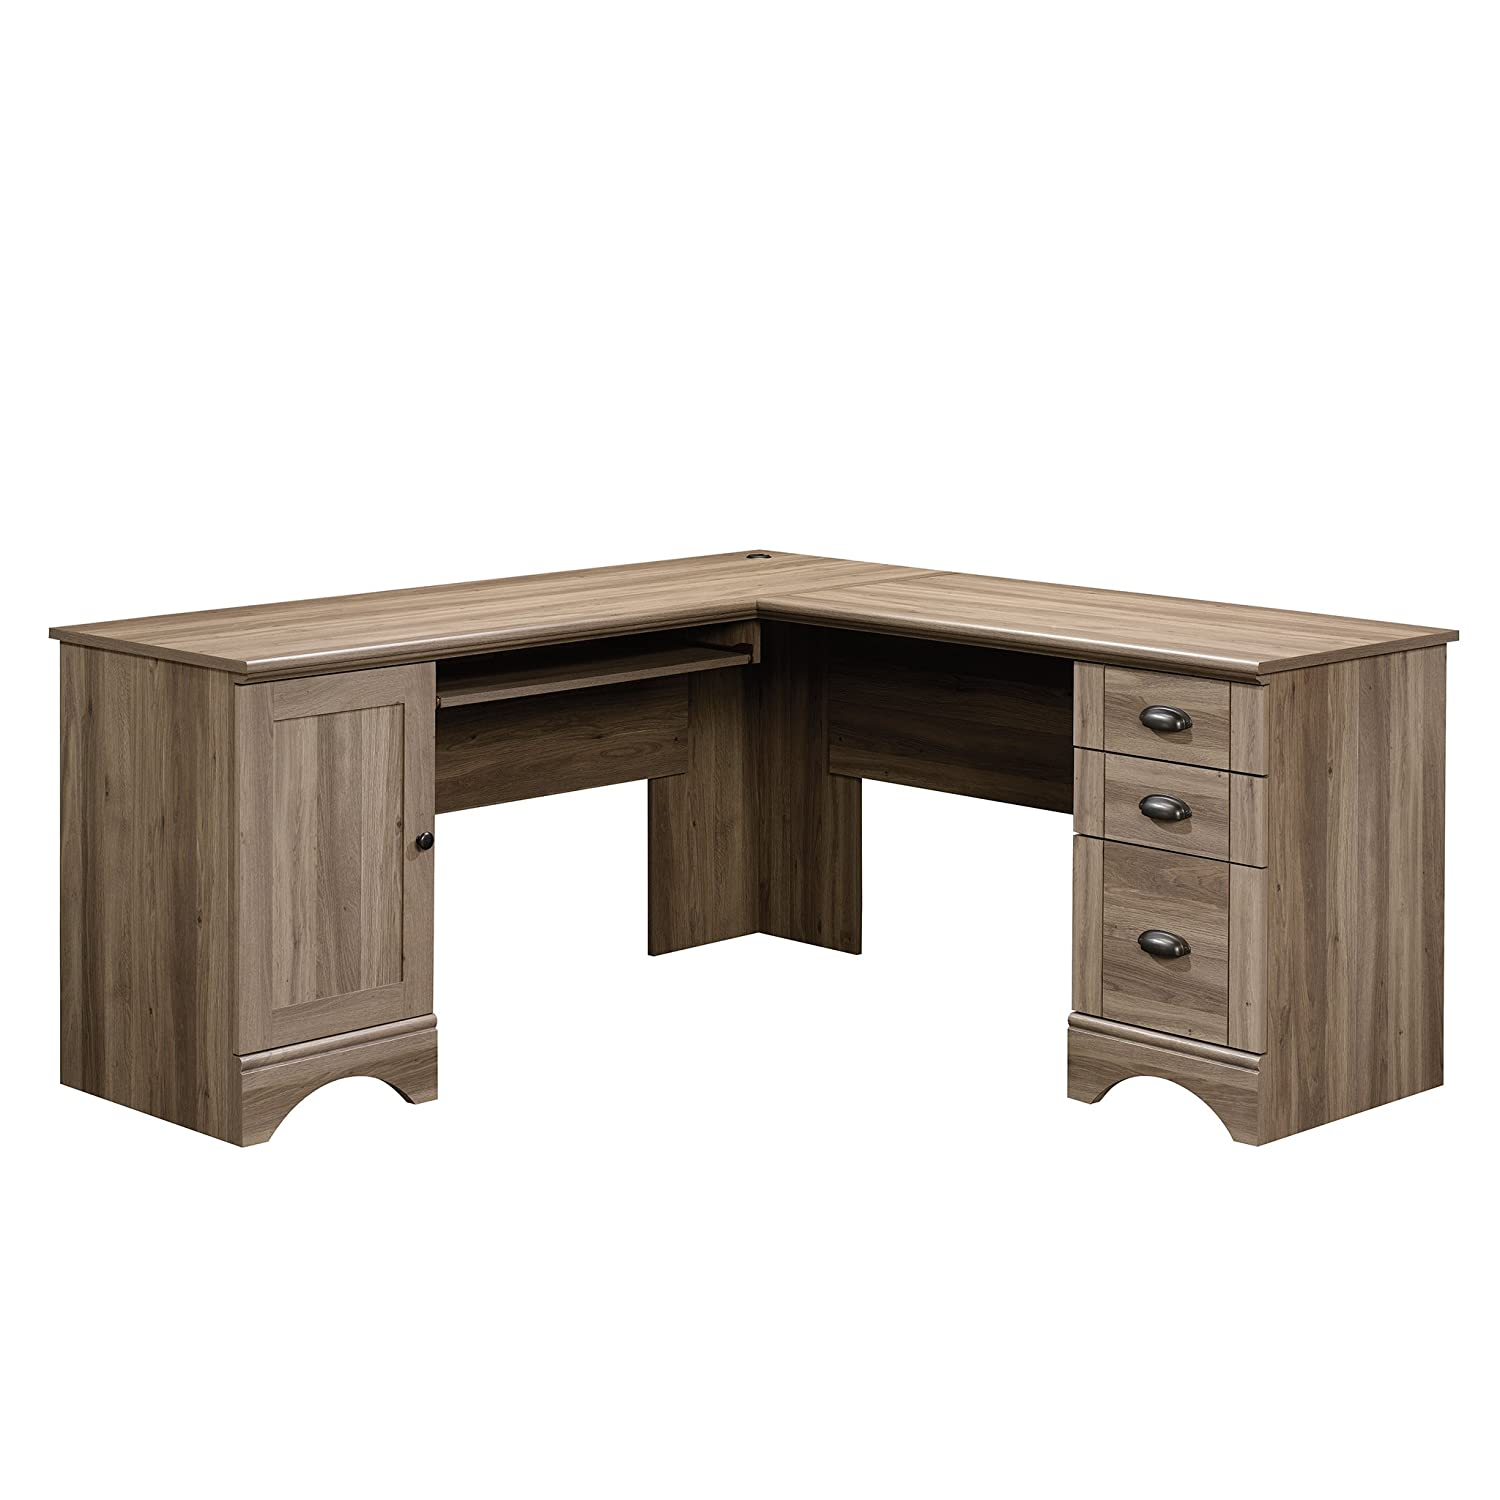 Sauder 417586 Harbor View Corner A2 Computer Desk, Salt Oak